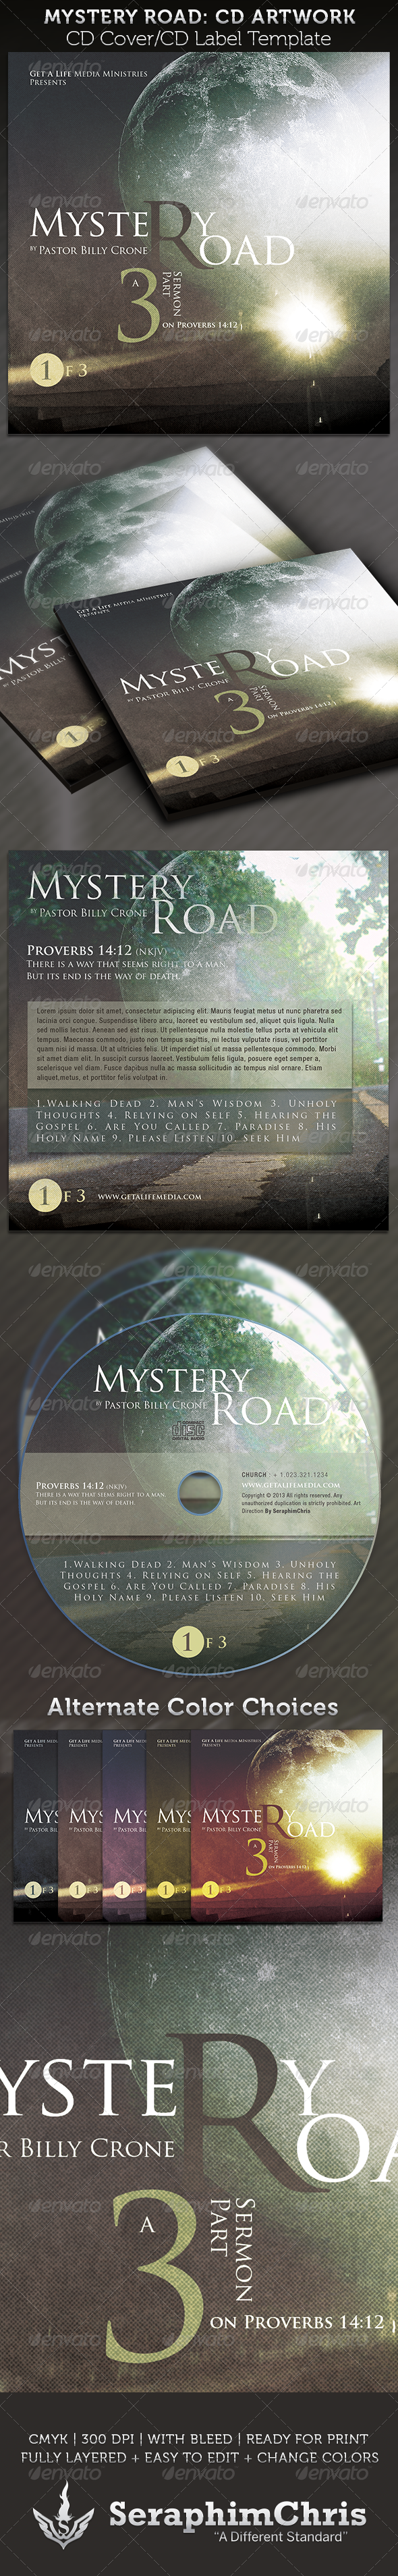 Mystery Road CD Cover Artwork Template $6.00